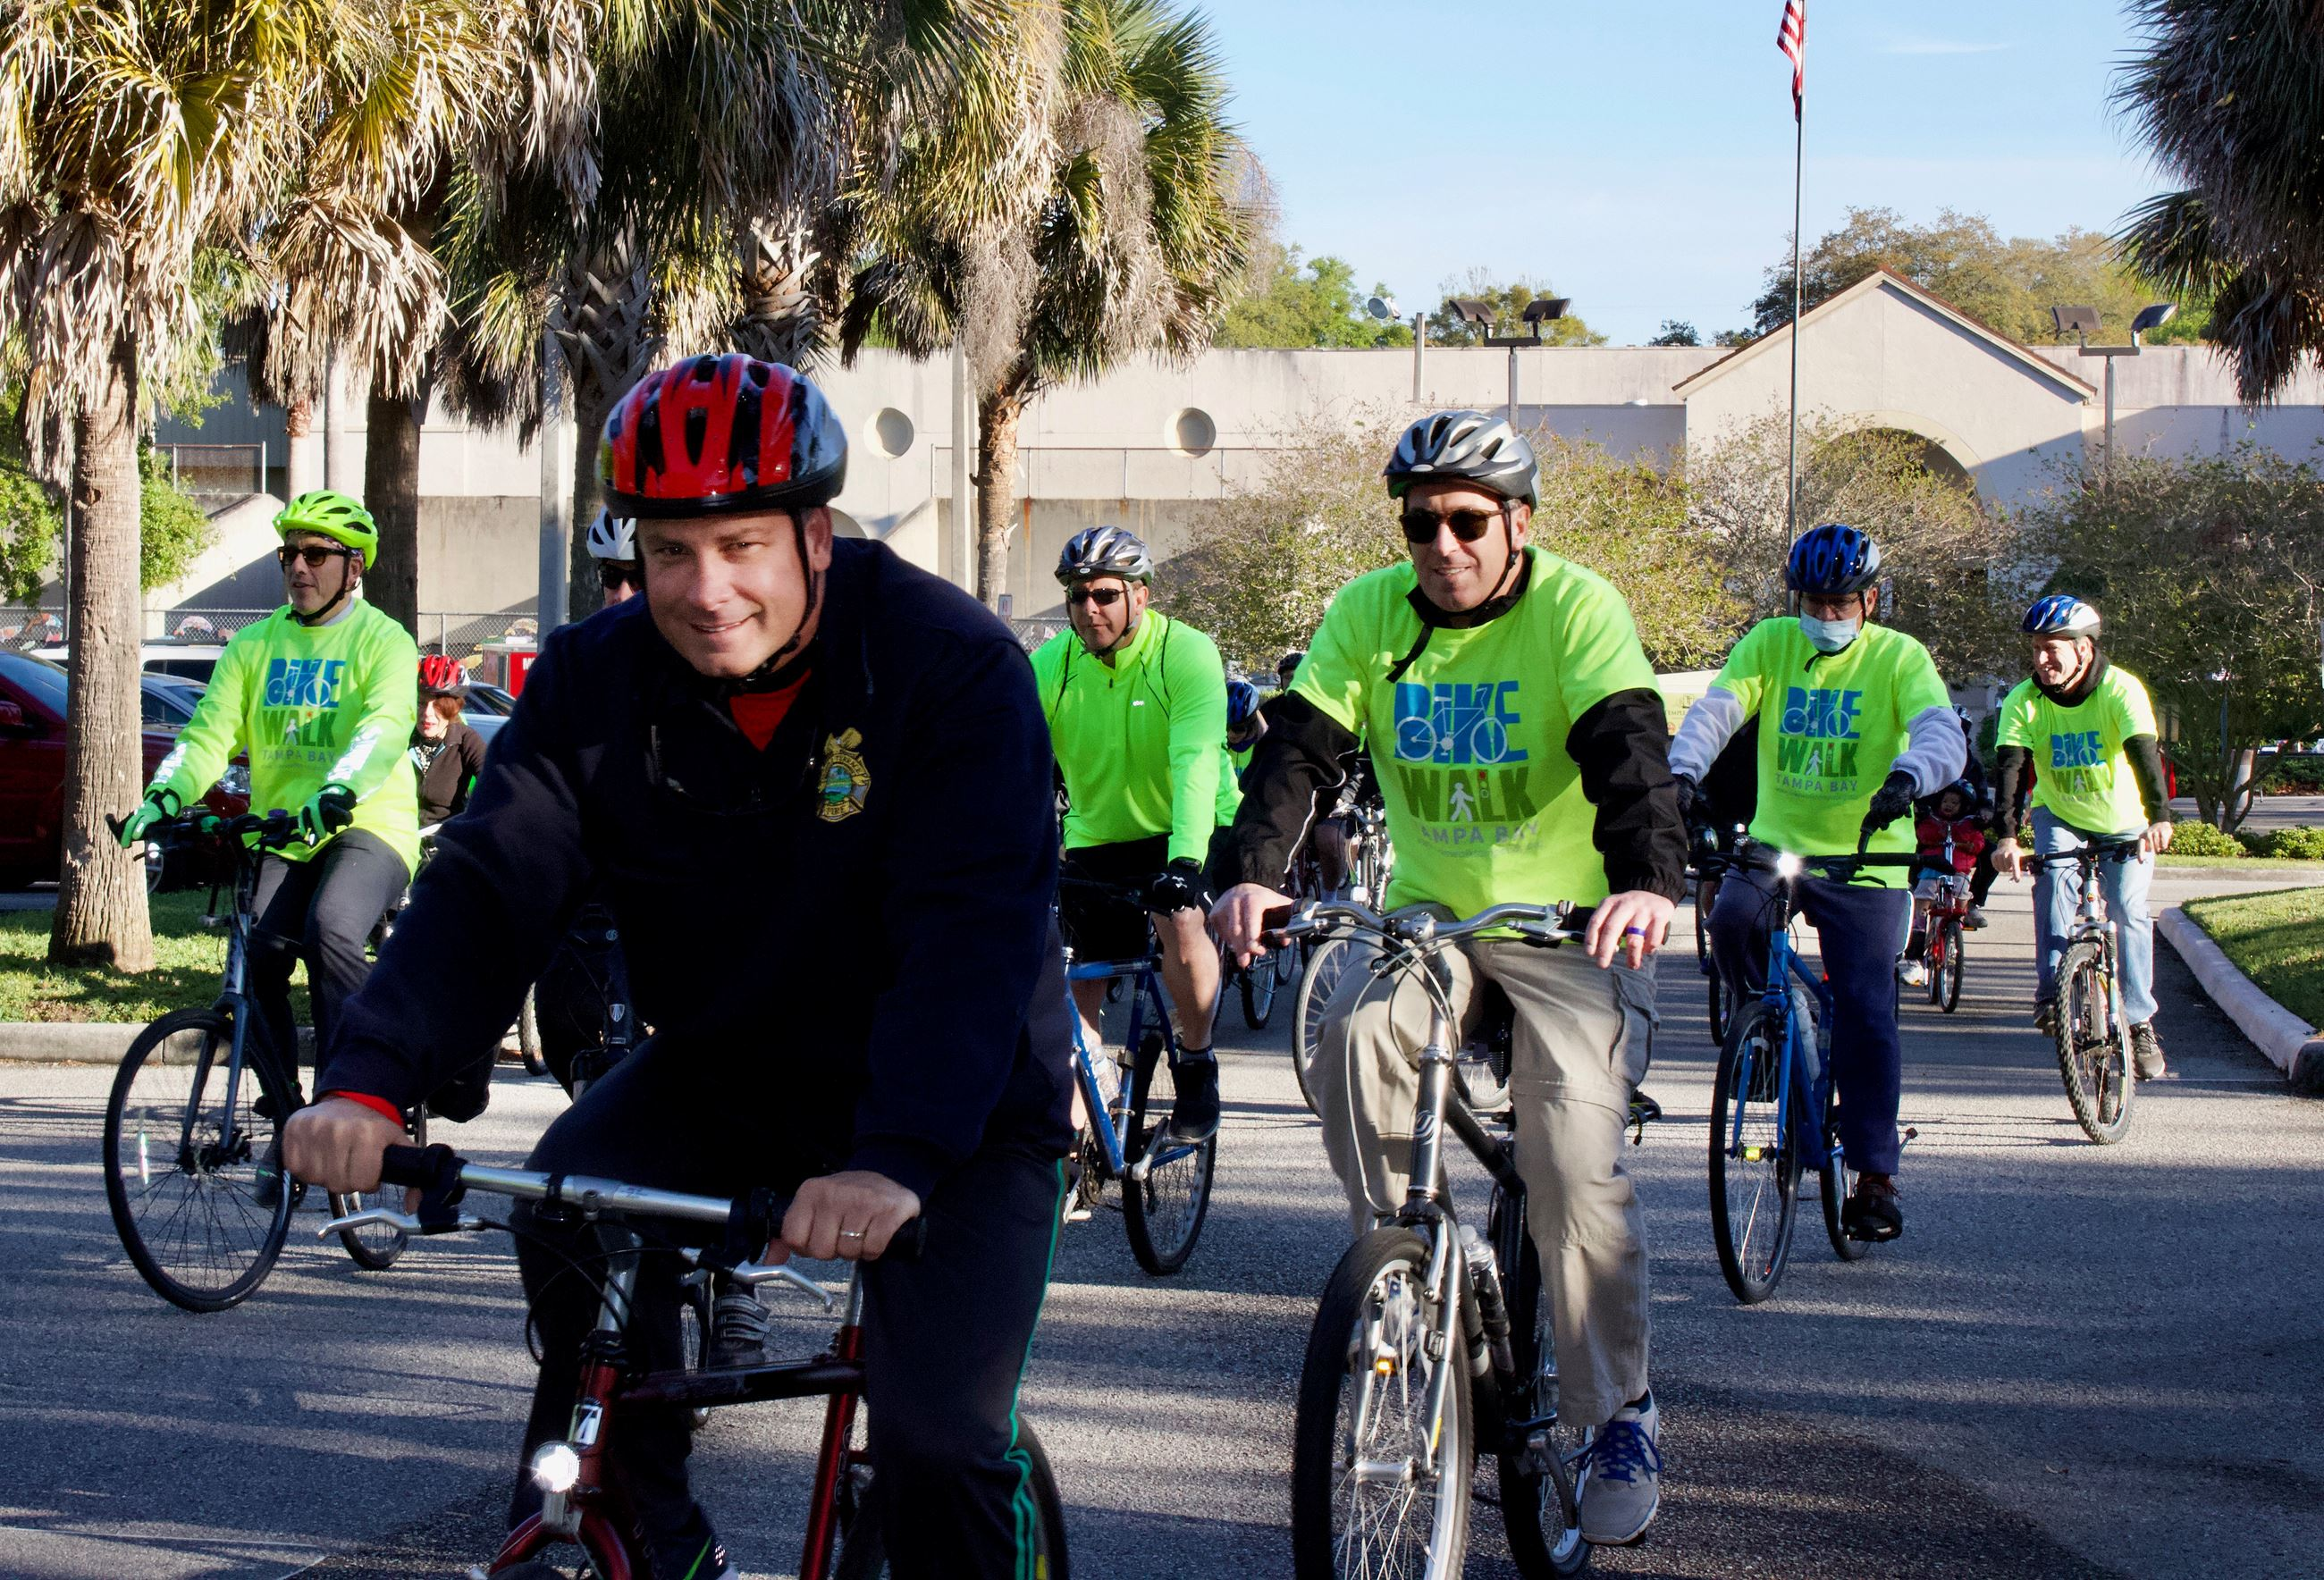 A group of bike riders participating in the annual Bike with the Mayor ride.